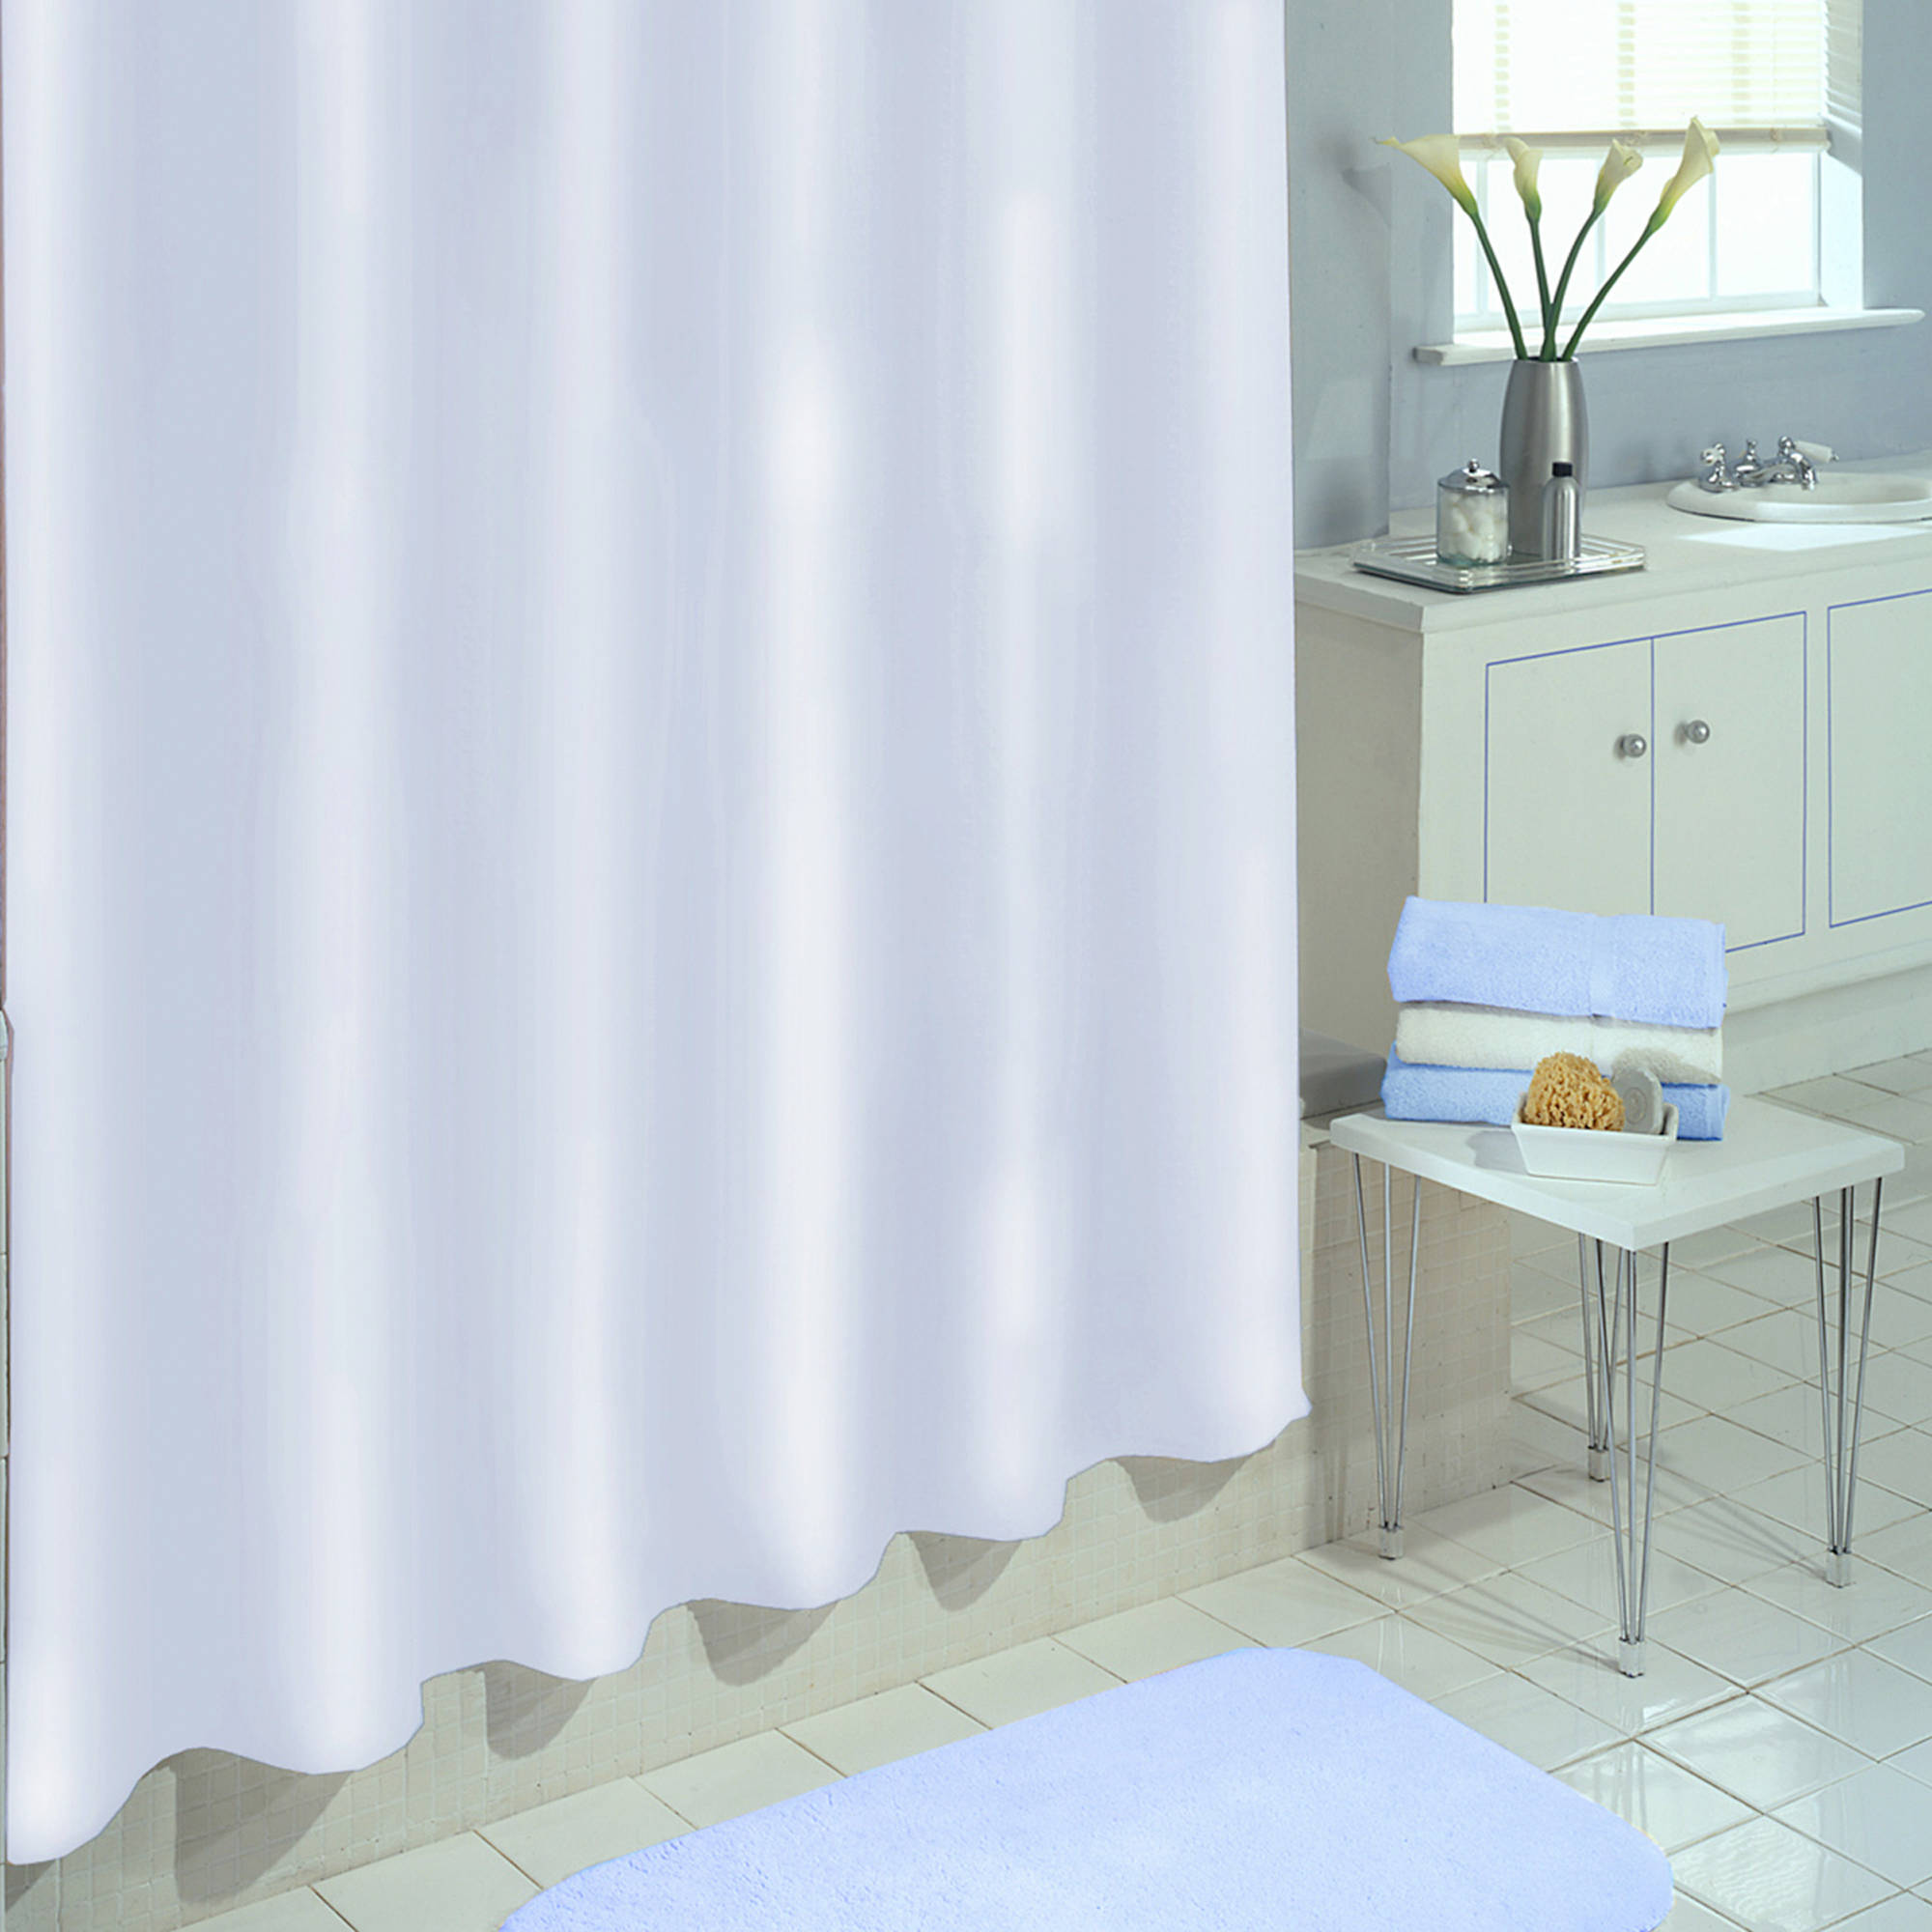 Shower Curtain Liner | Clear Shower Curtain Liner Extra Long | Washable Shower Curtain Liner